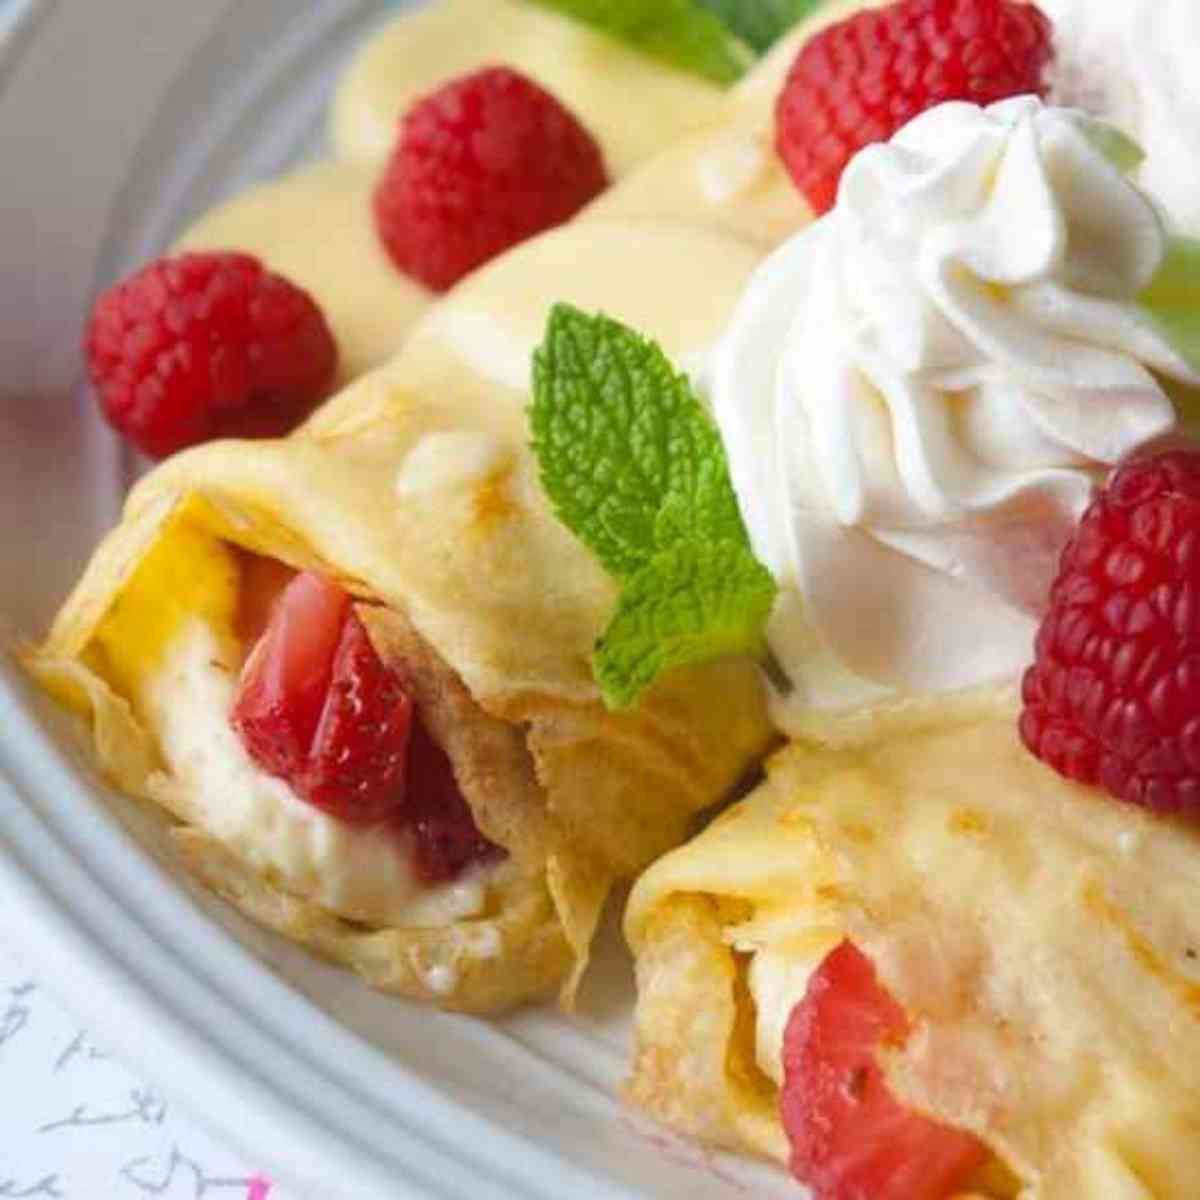 Two berry crepes ready to eat!